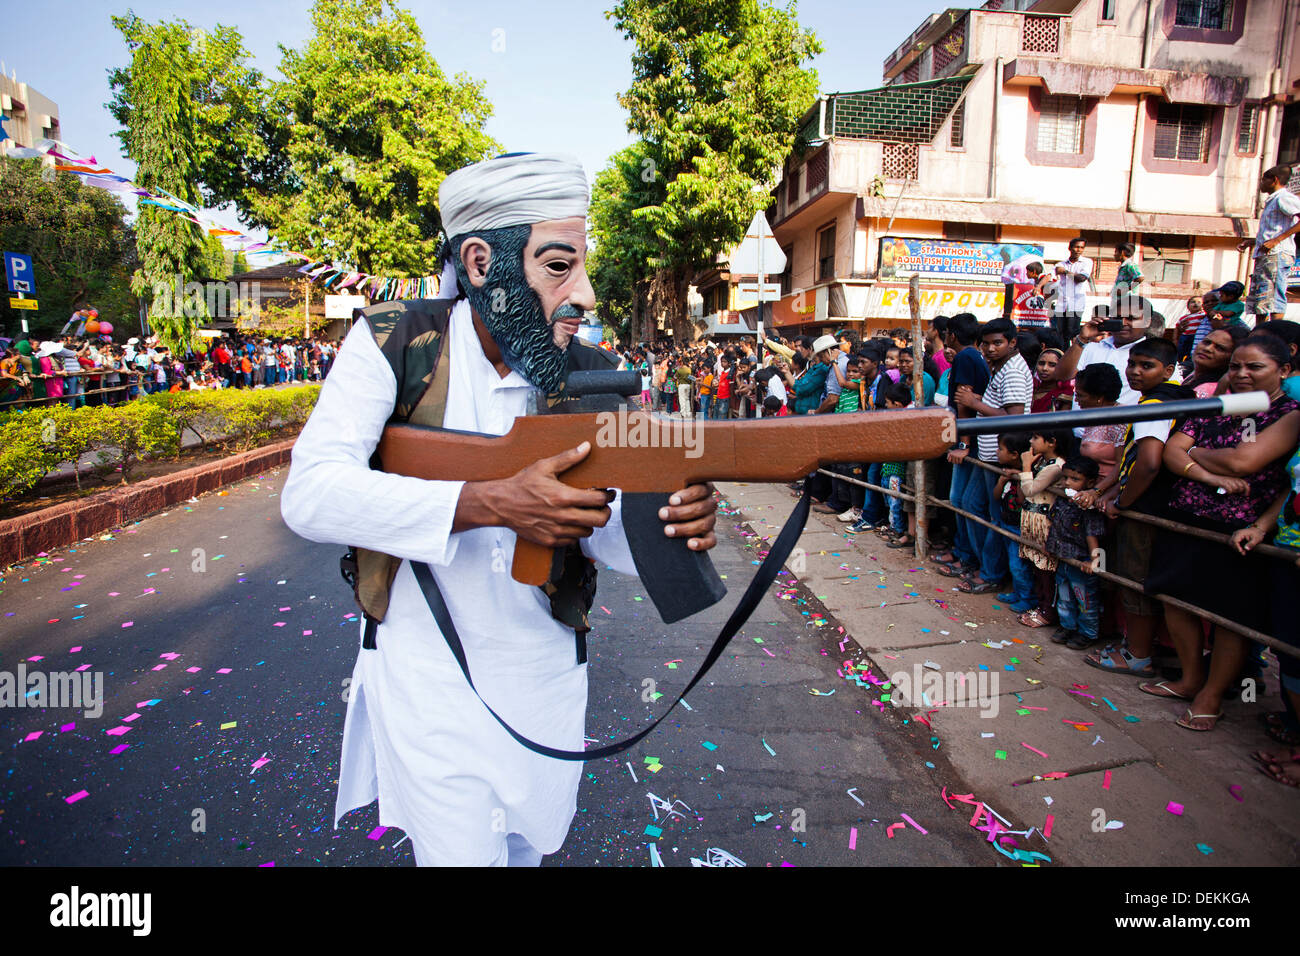 Man acting as terrorist during a procession in a carnival, Goa Carnivals, Goa, India - Stock Image